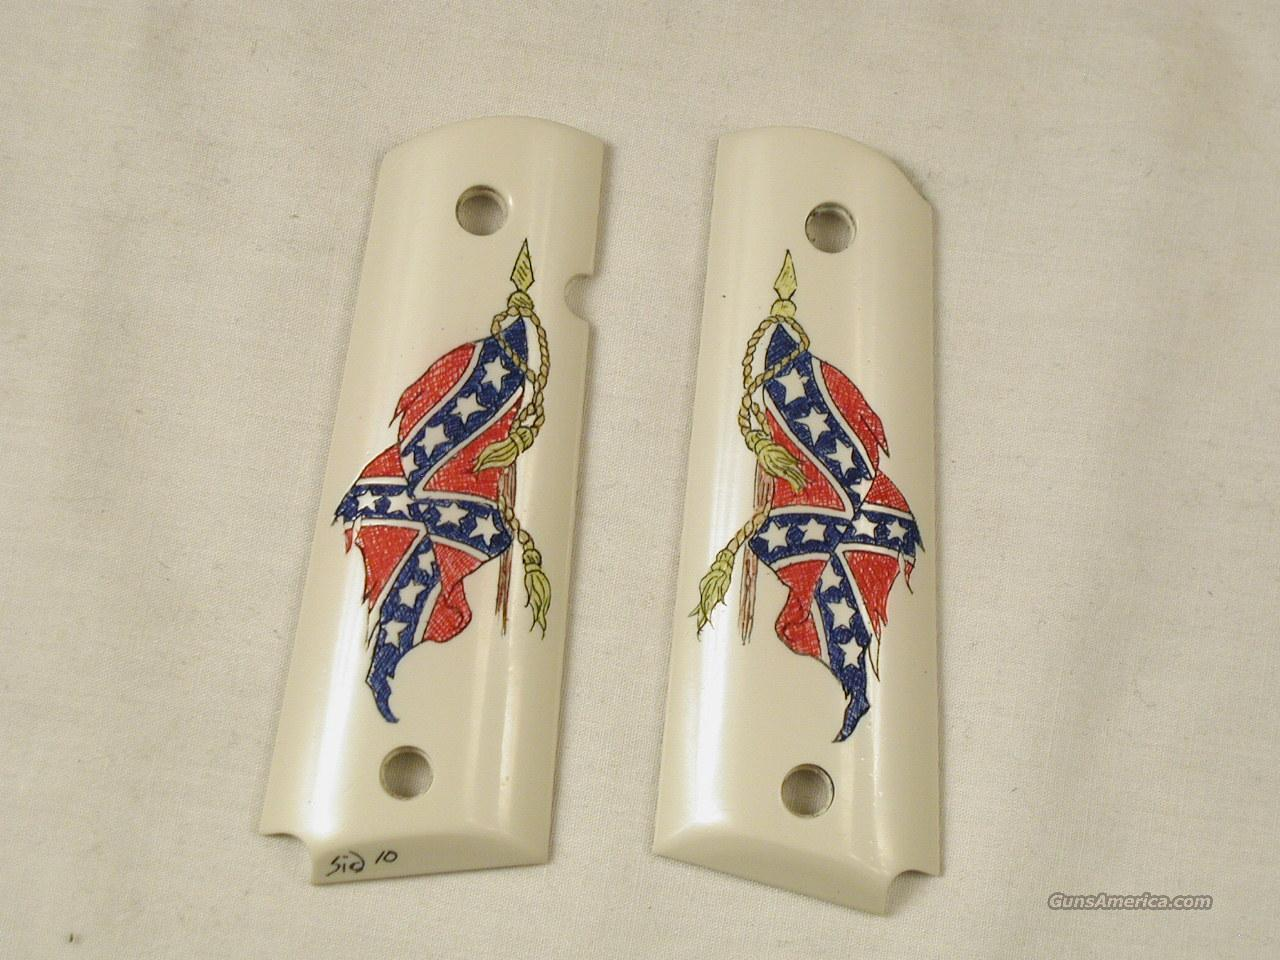 1911 GOVERNMENT SIZE CONFEDERATE FLAG CUSTOM GRIPS  Non-Guns > Gunstocks, Grips & Wood